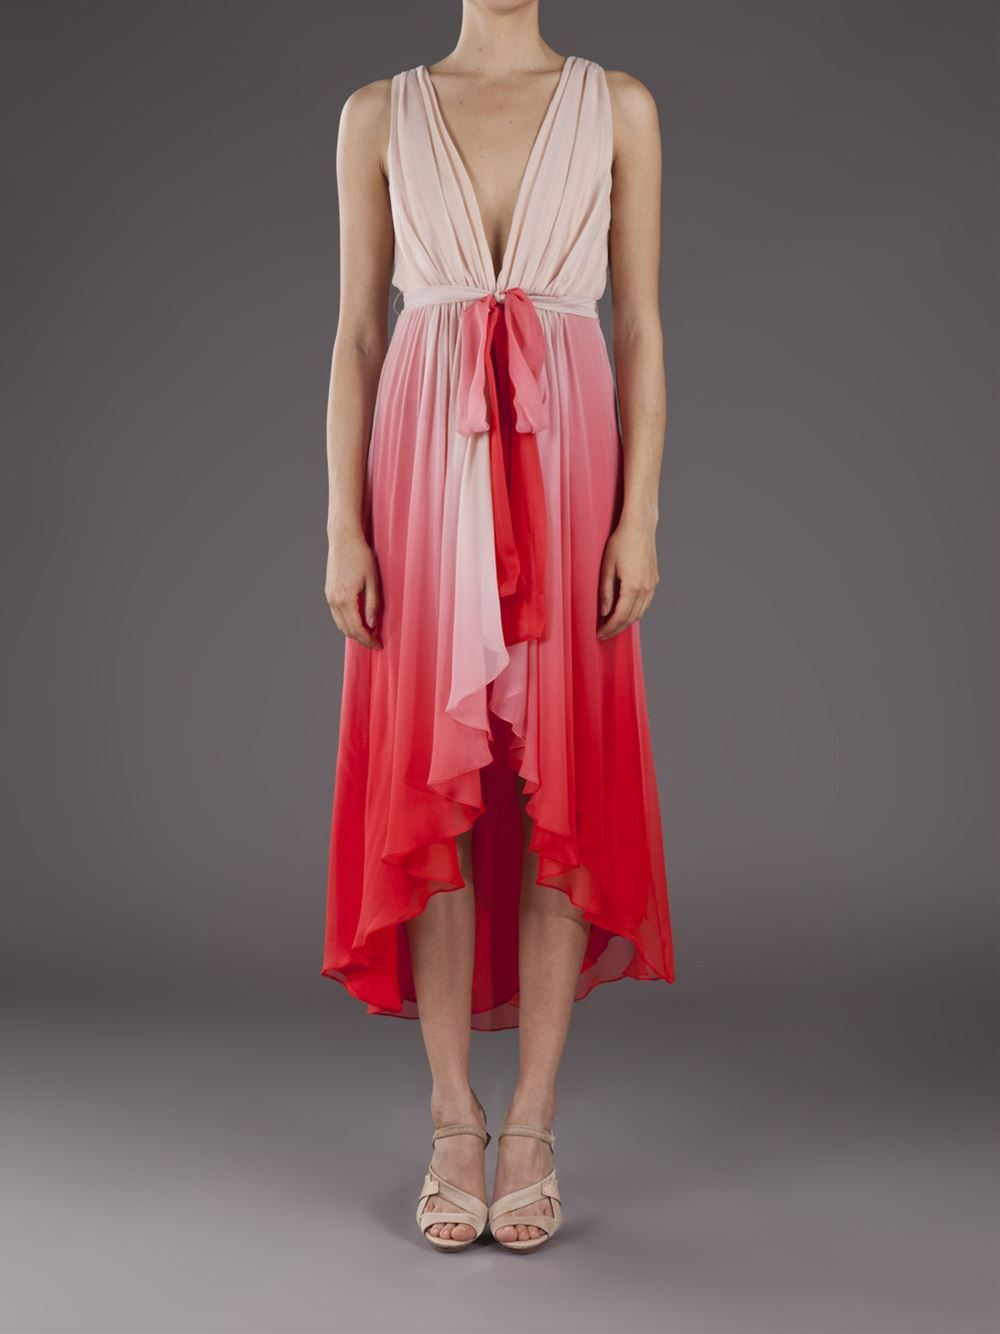 Haute Hippie Ombre Dress - - Farfetch.com